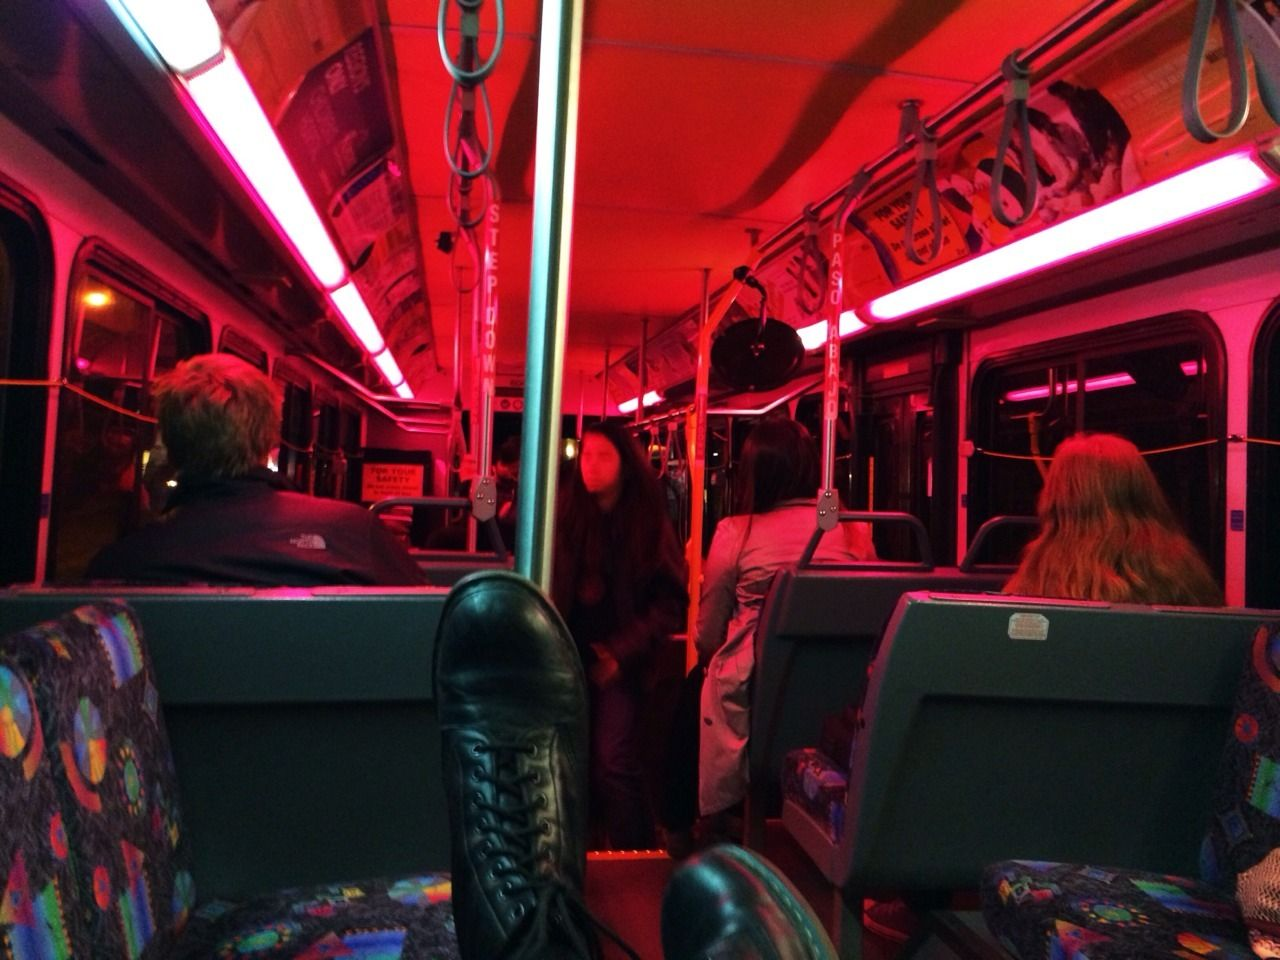 Ben Alessi The Bus Looks Pretty Red Aesthetic Aesthetic Photo